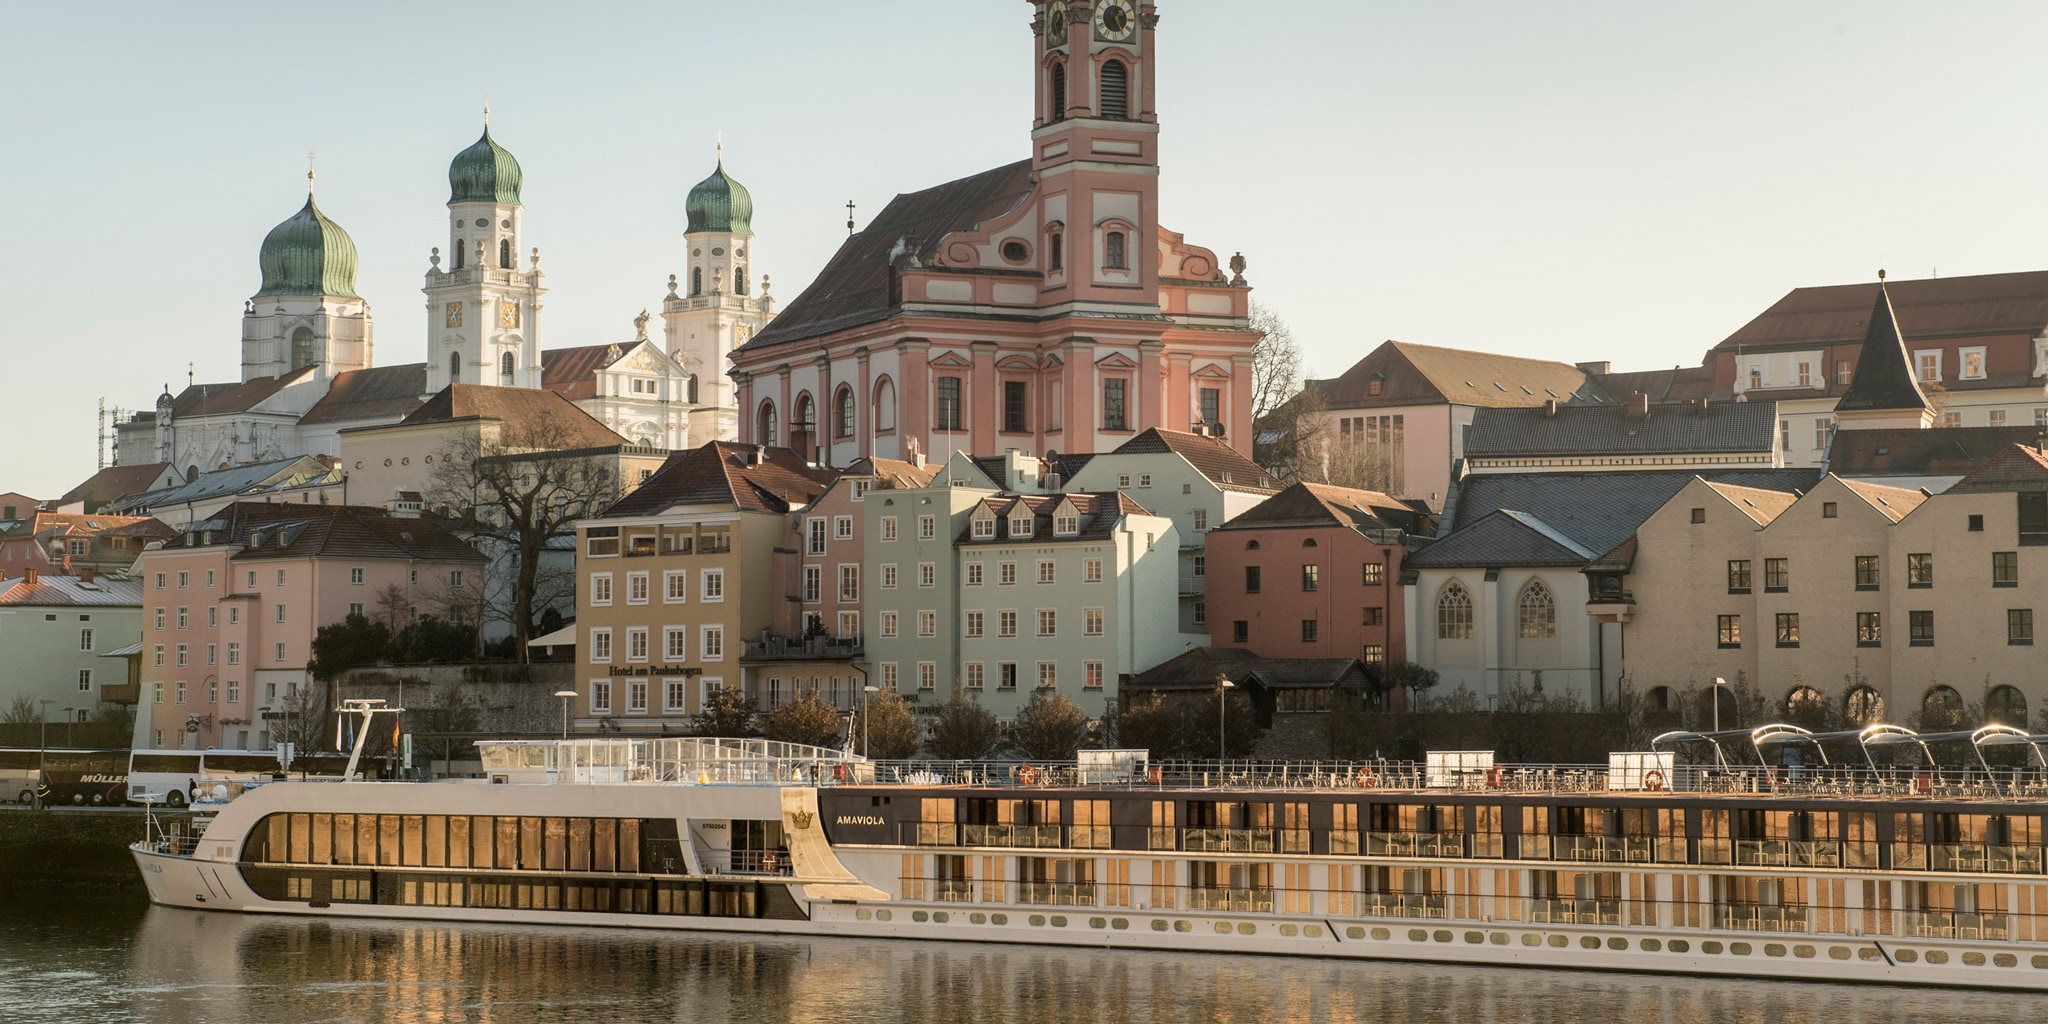 An AmaWaterways ship cruises along the Danube River past the town of Passau, Germany